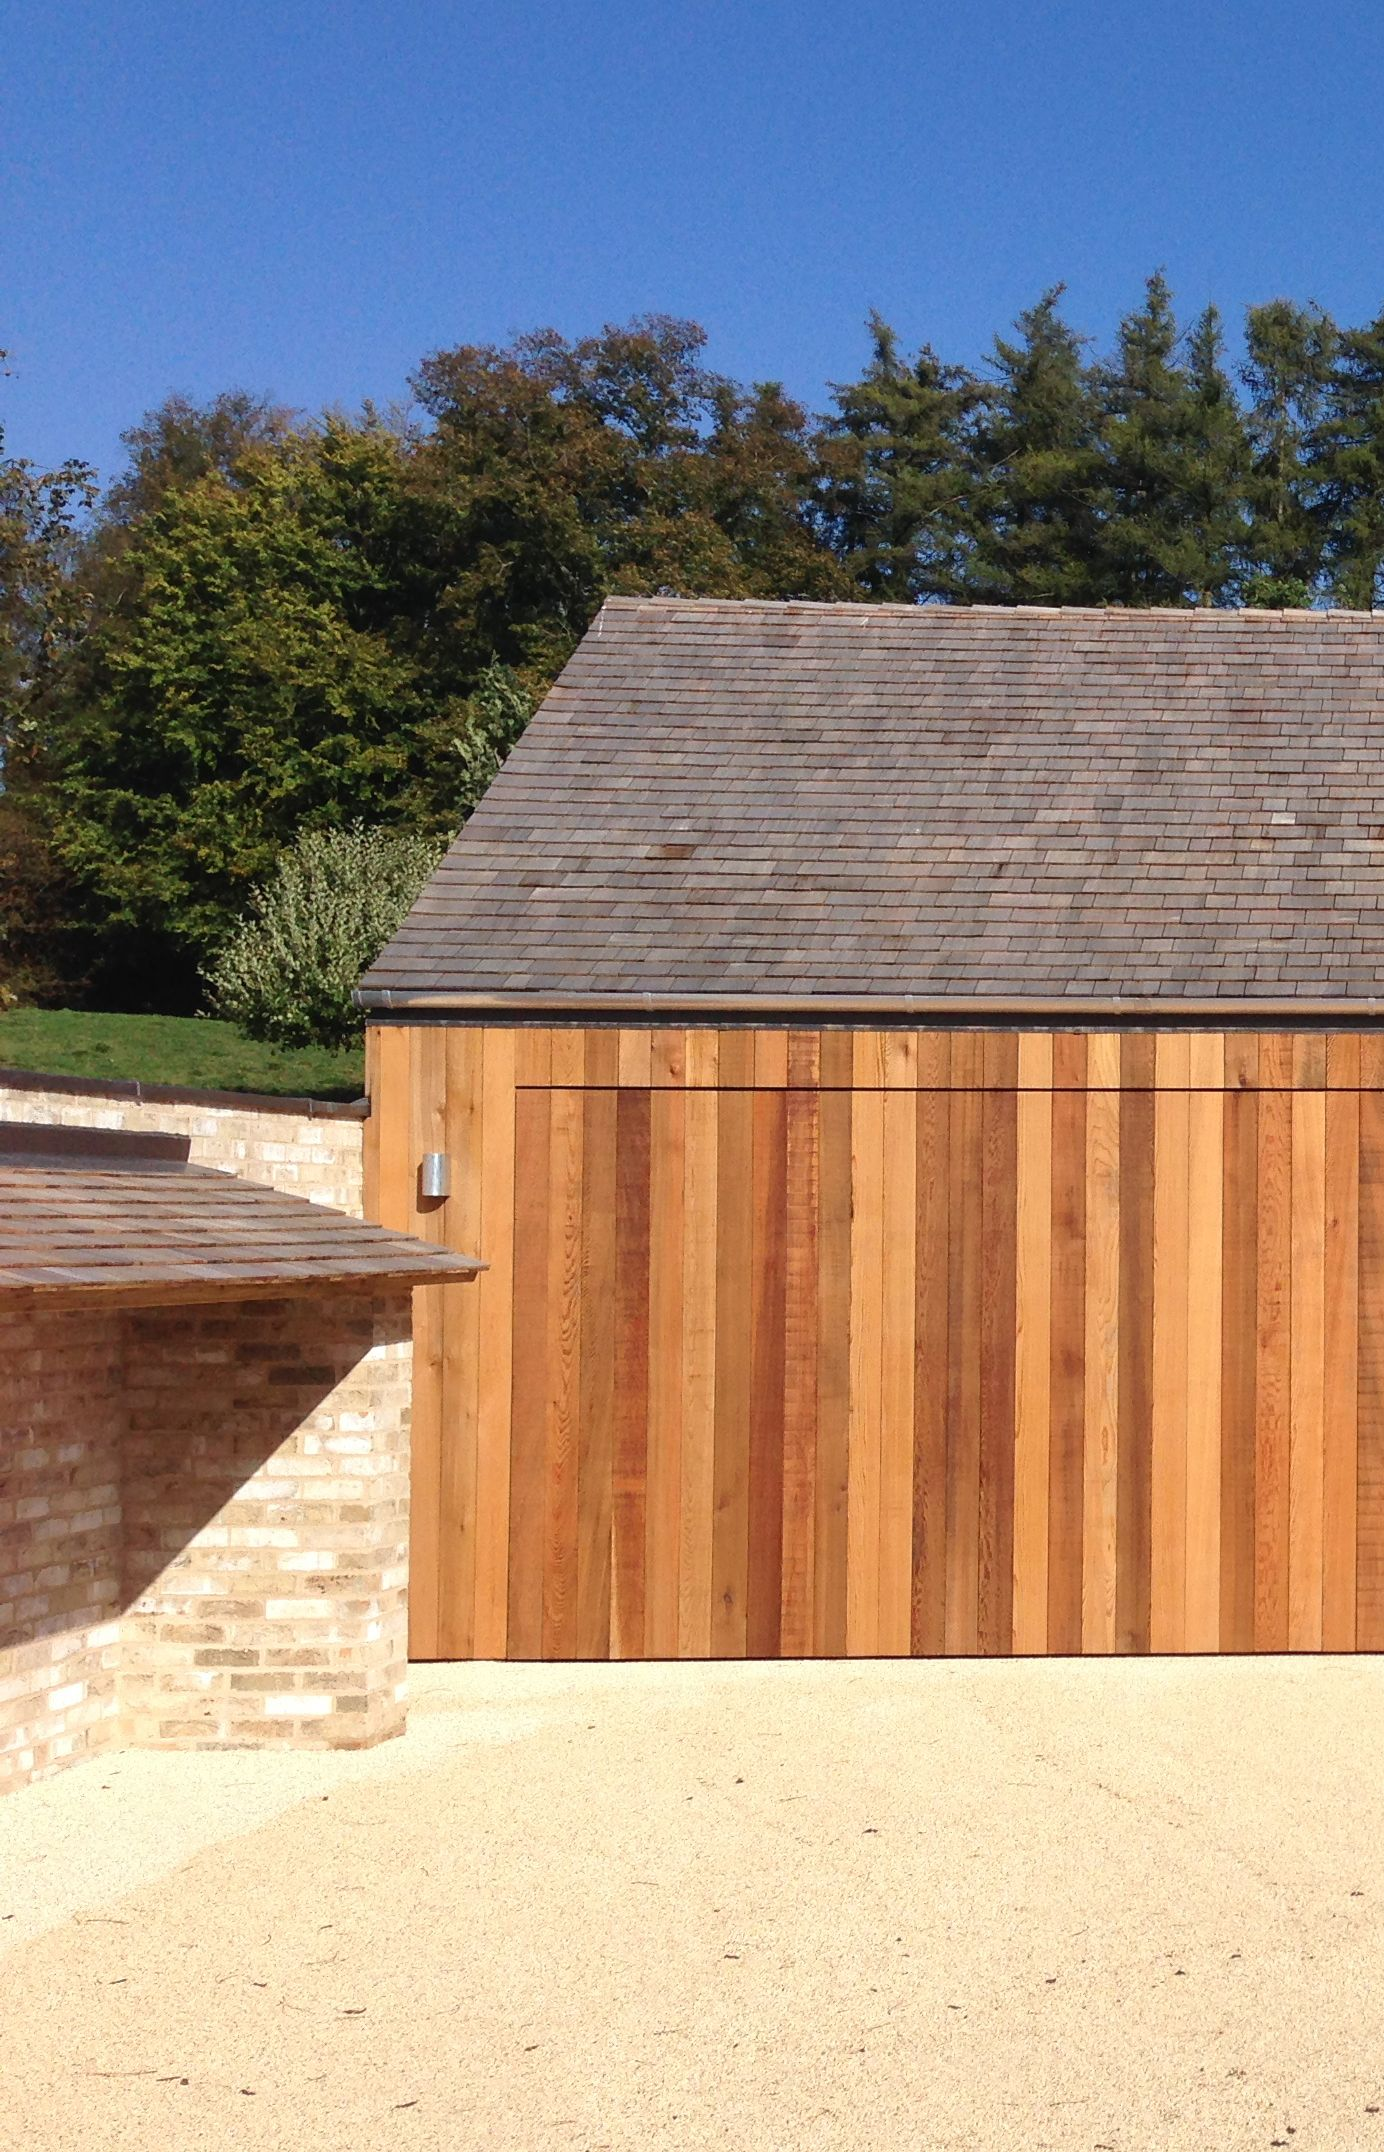 Mclean Quinlan The Stables Cedar Cladding With Shingle Roof Brickwork Wood Store Concealed Garage Door Hot Tub House Cedar Cladding Cladding